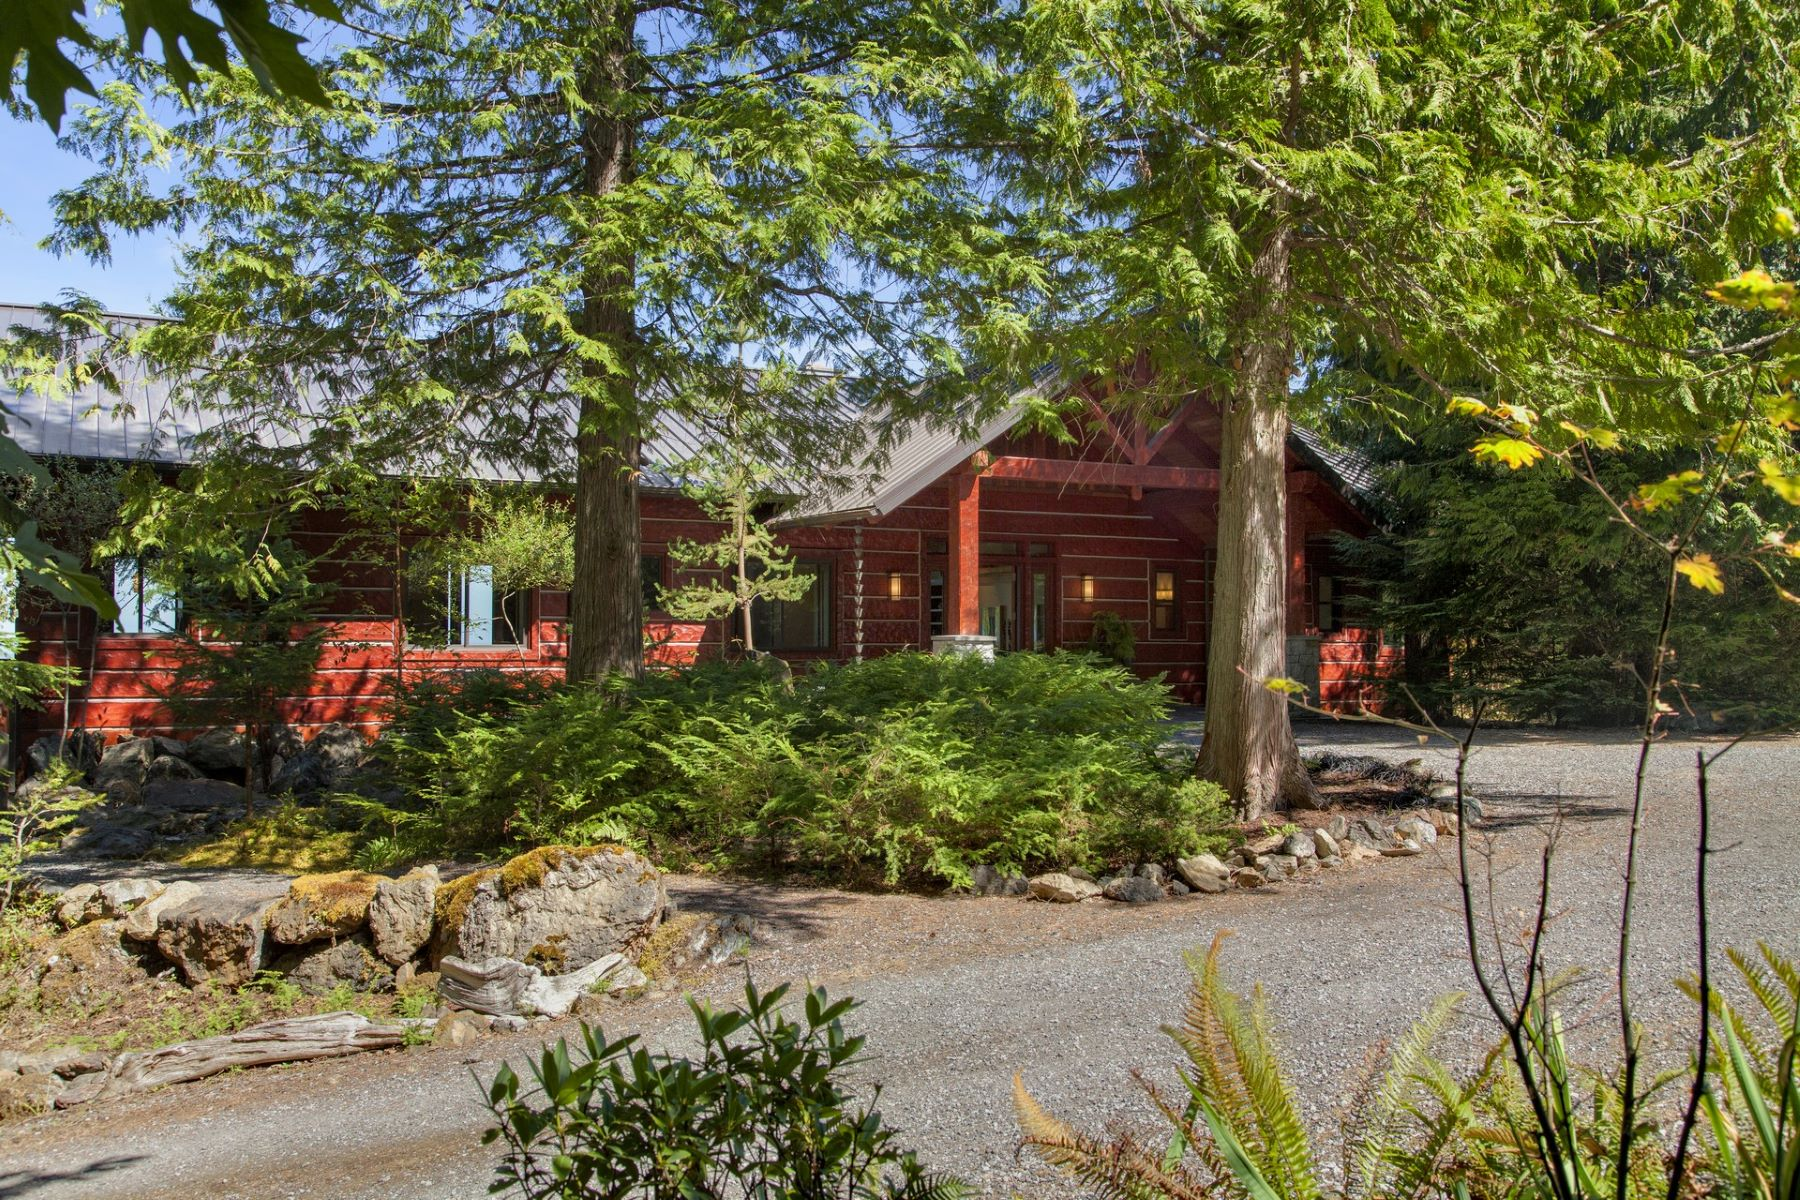 Single Family Home for Sale at Spring Hill Lodge 609 Spring Hill Rd Orcas, Washington, 98245 United States